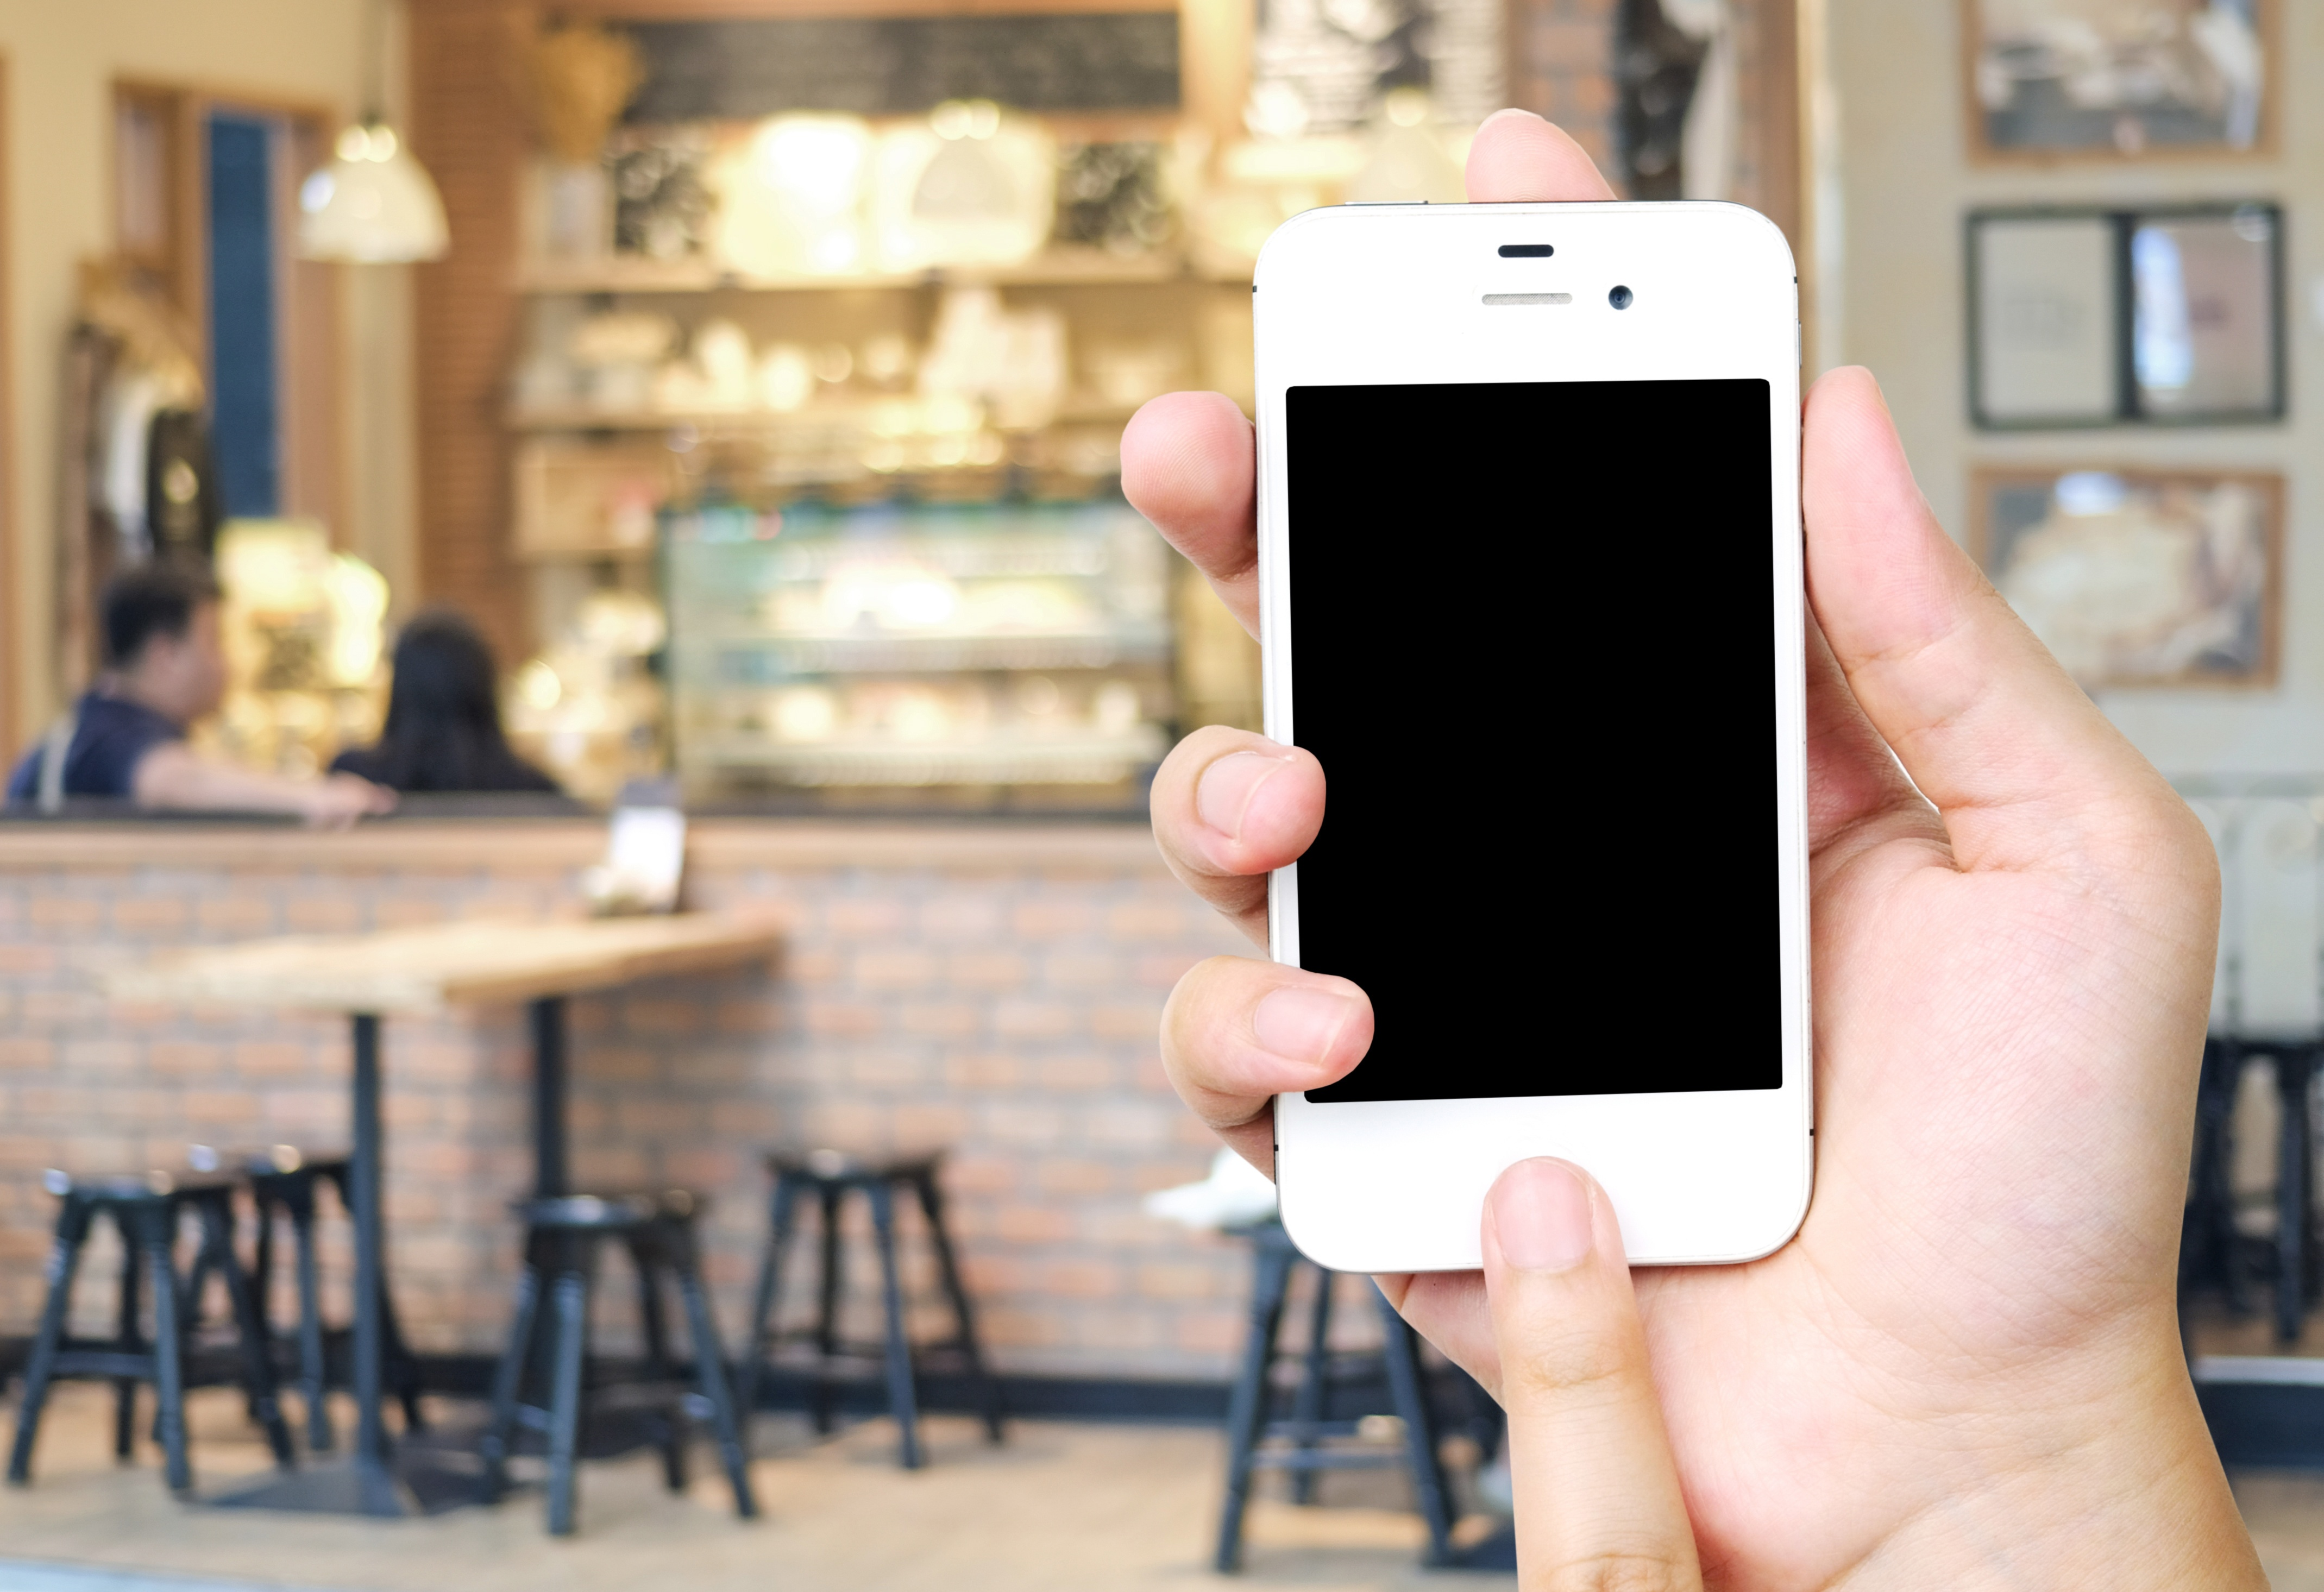 Fast Food Trends in 2018: Where Does Social Media Fit In?